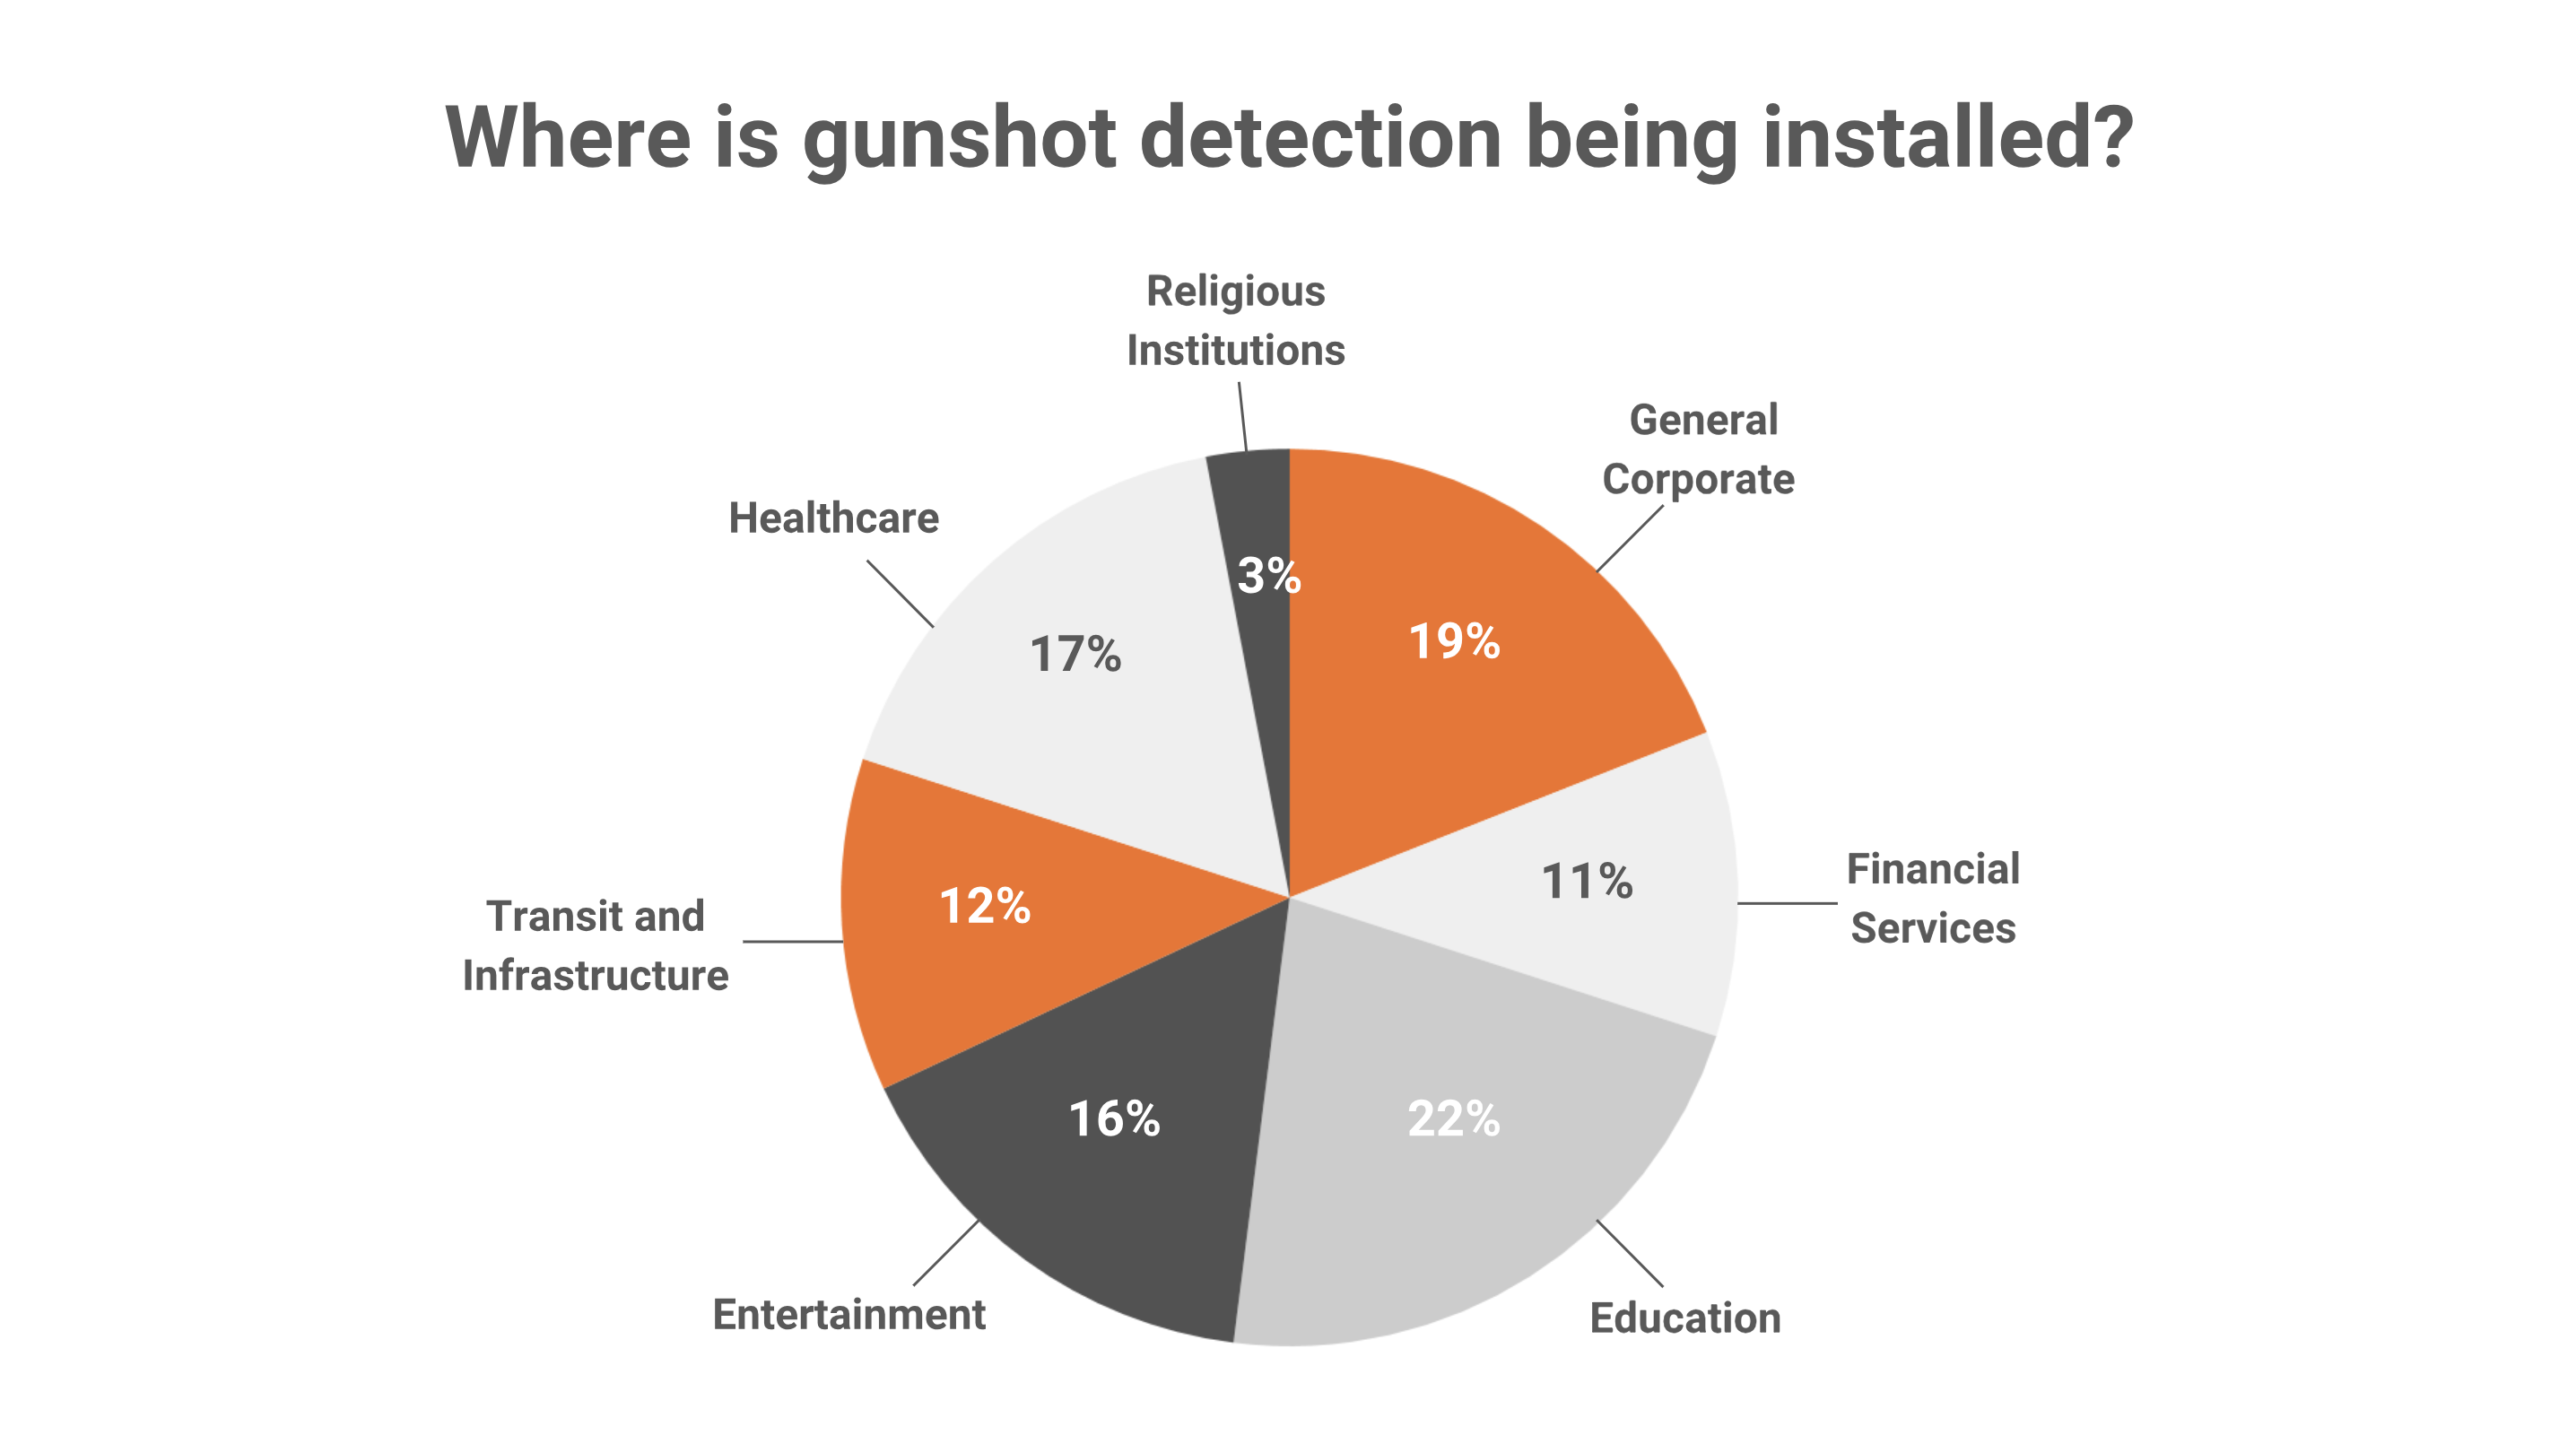 2018 Gunshot Detection Trends